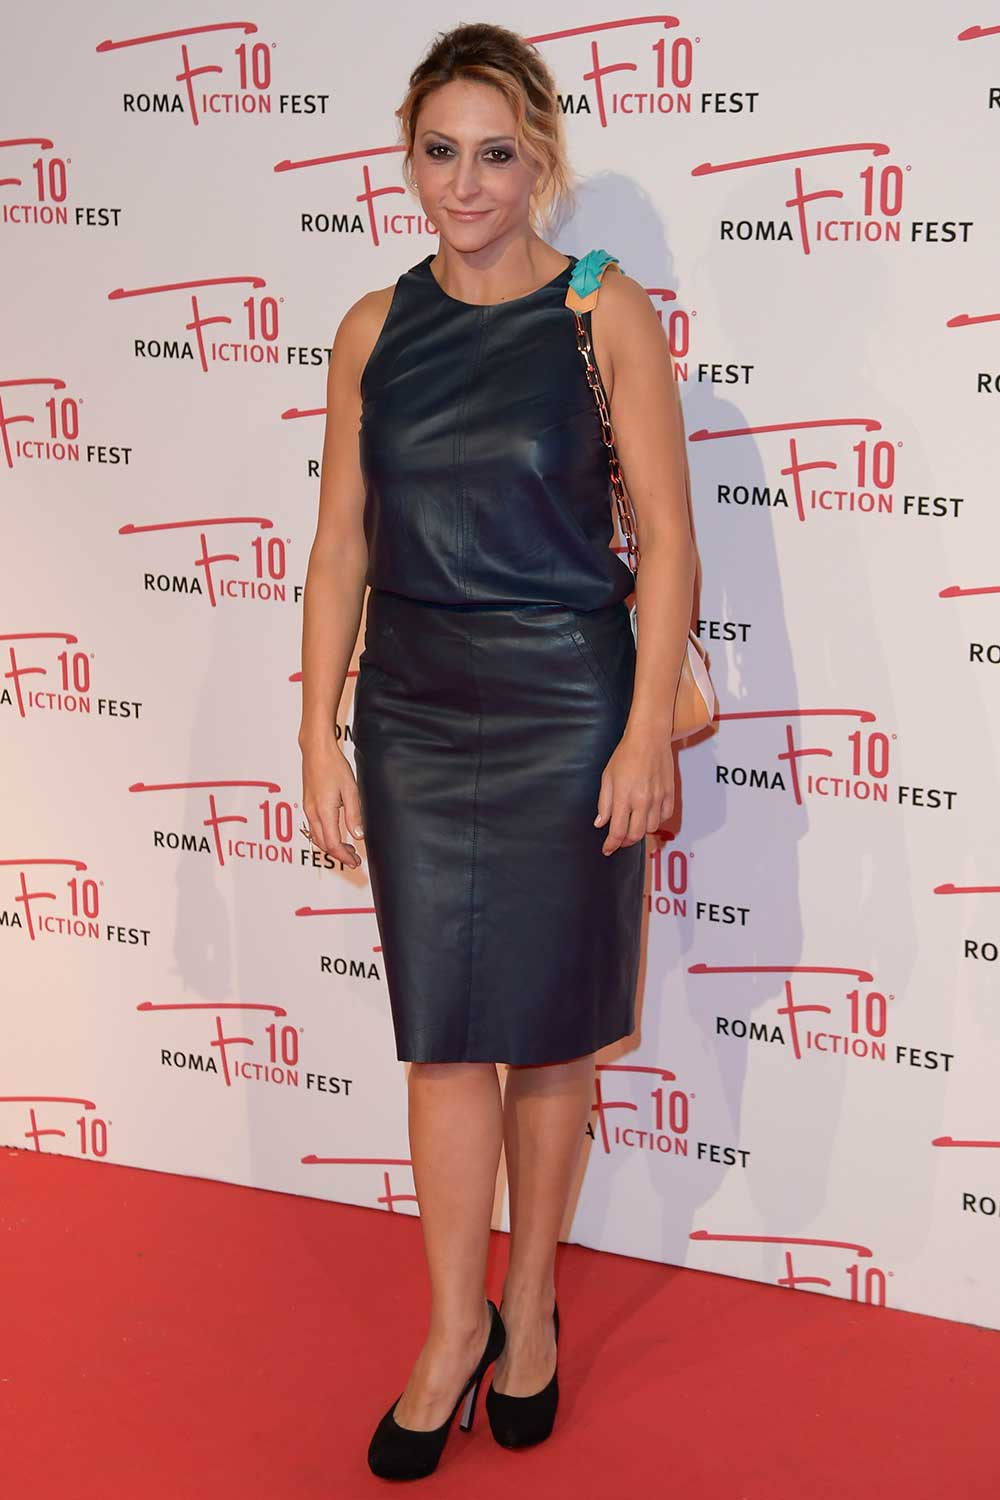 Paola Minaccioni attends In arte Nino film premiere Roma Fiction Fest